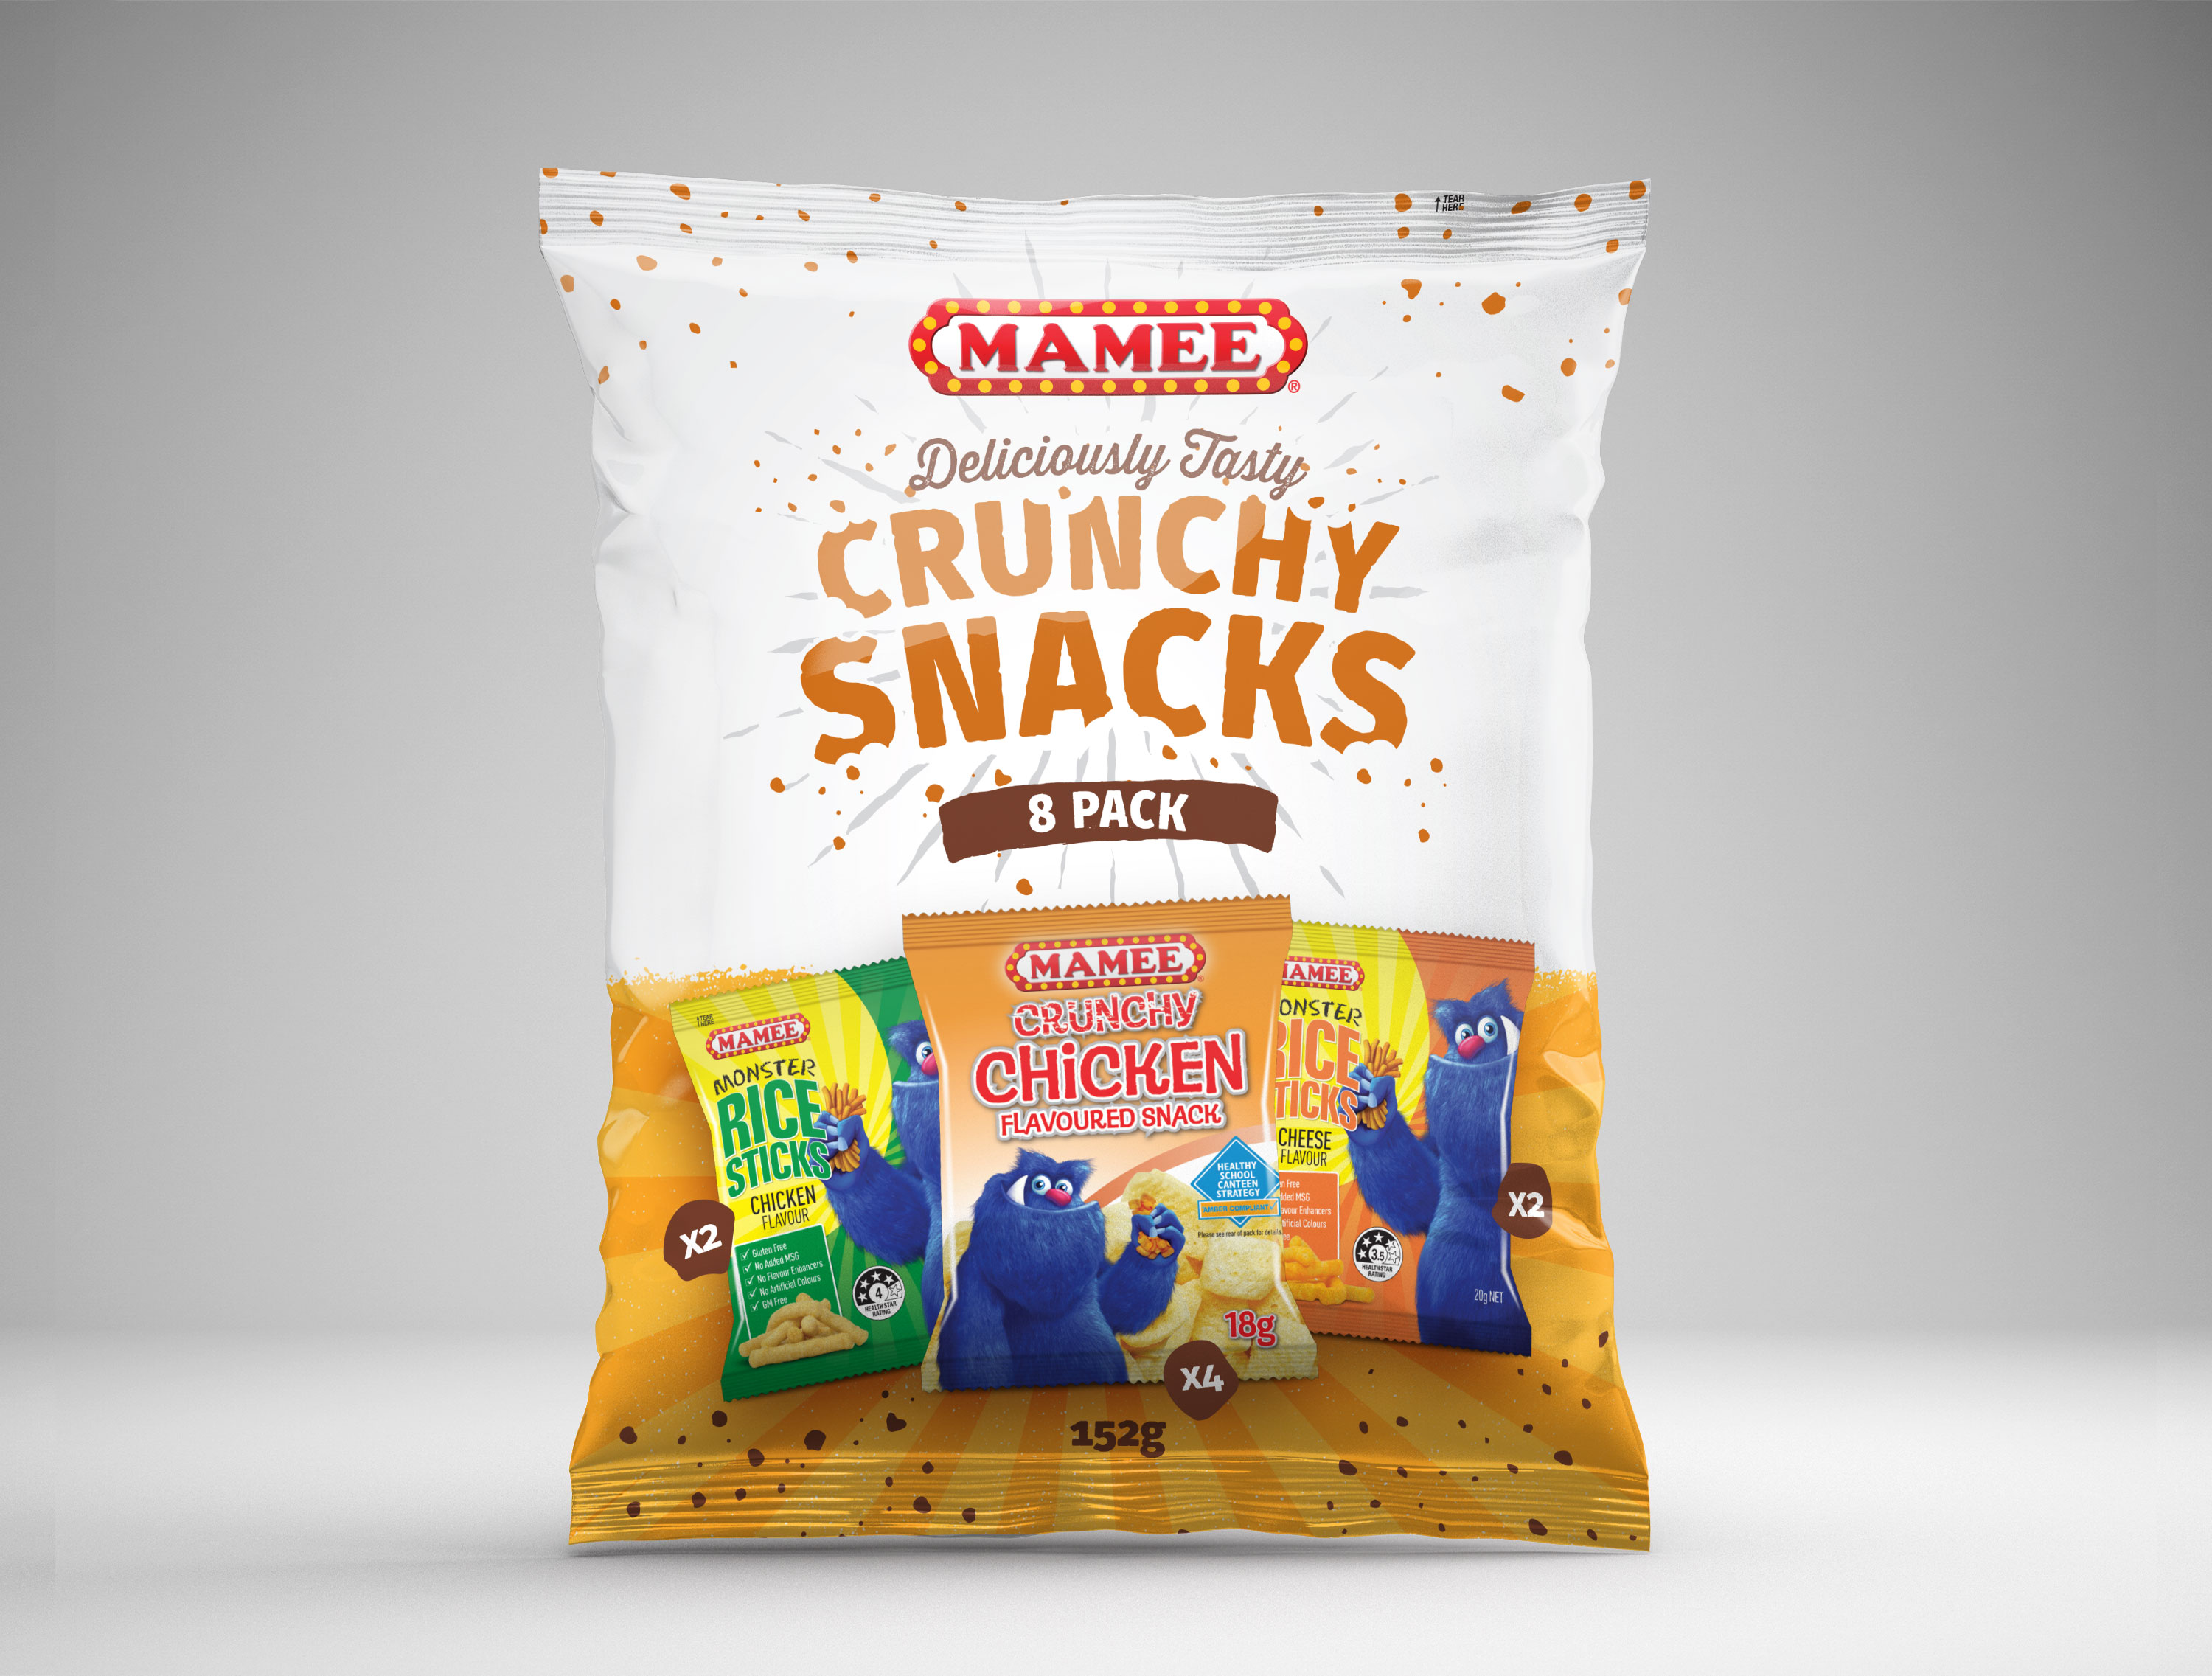 Mamee Crucnhy Snacks Packaging Design